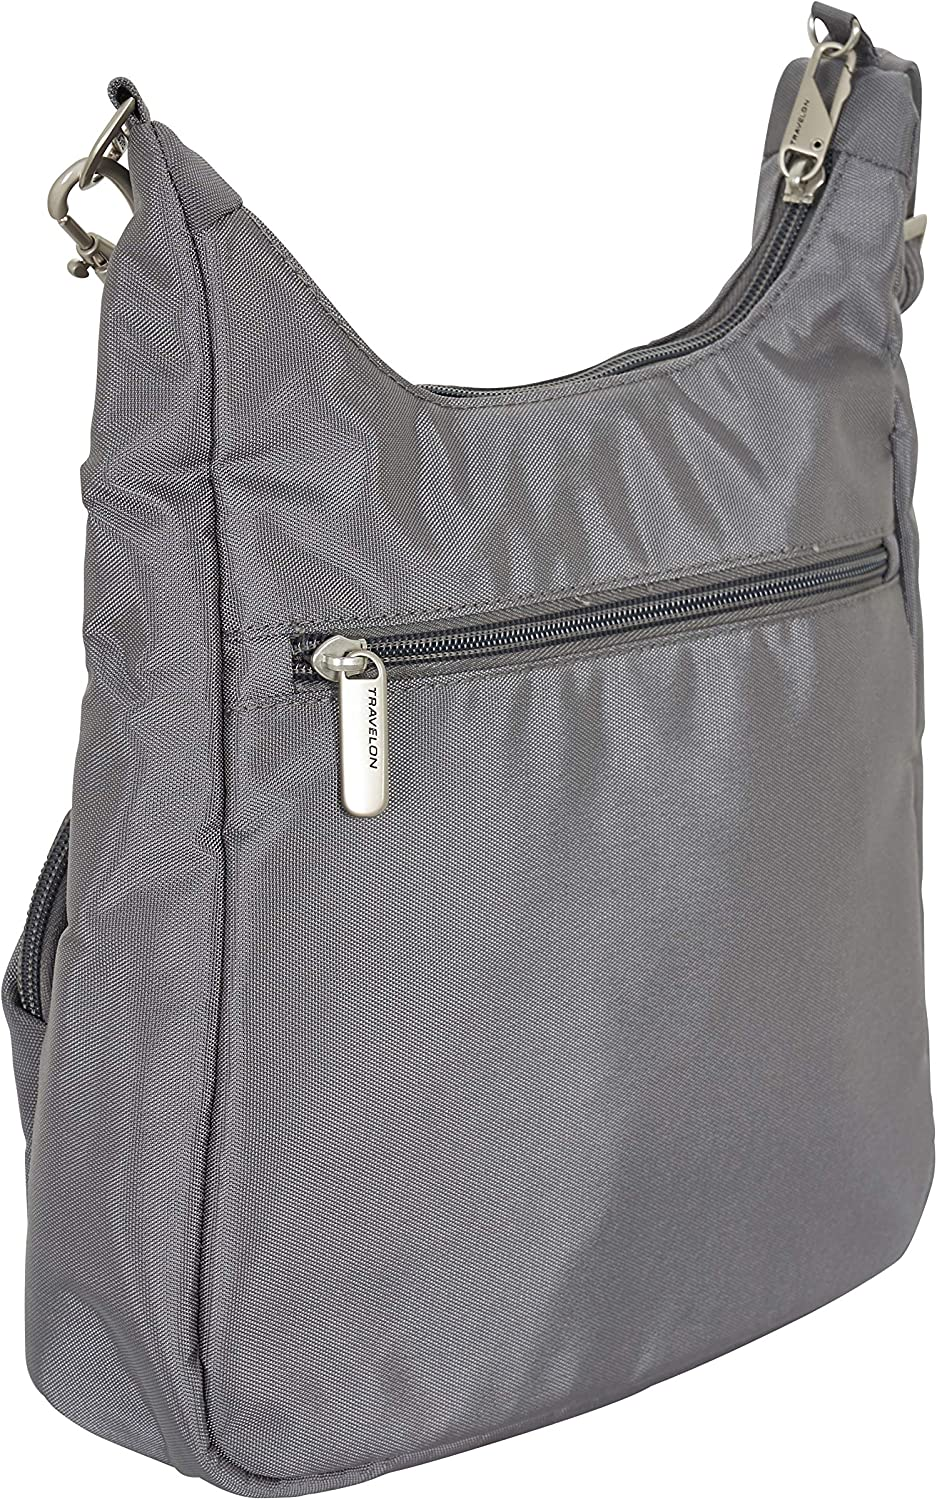 Travelon Anti-Theft Classic Essential Messenger Bag Exclusive Colos - Grey